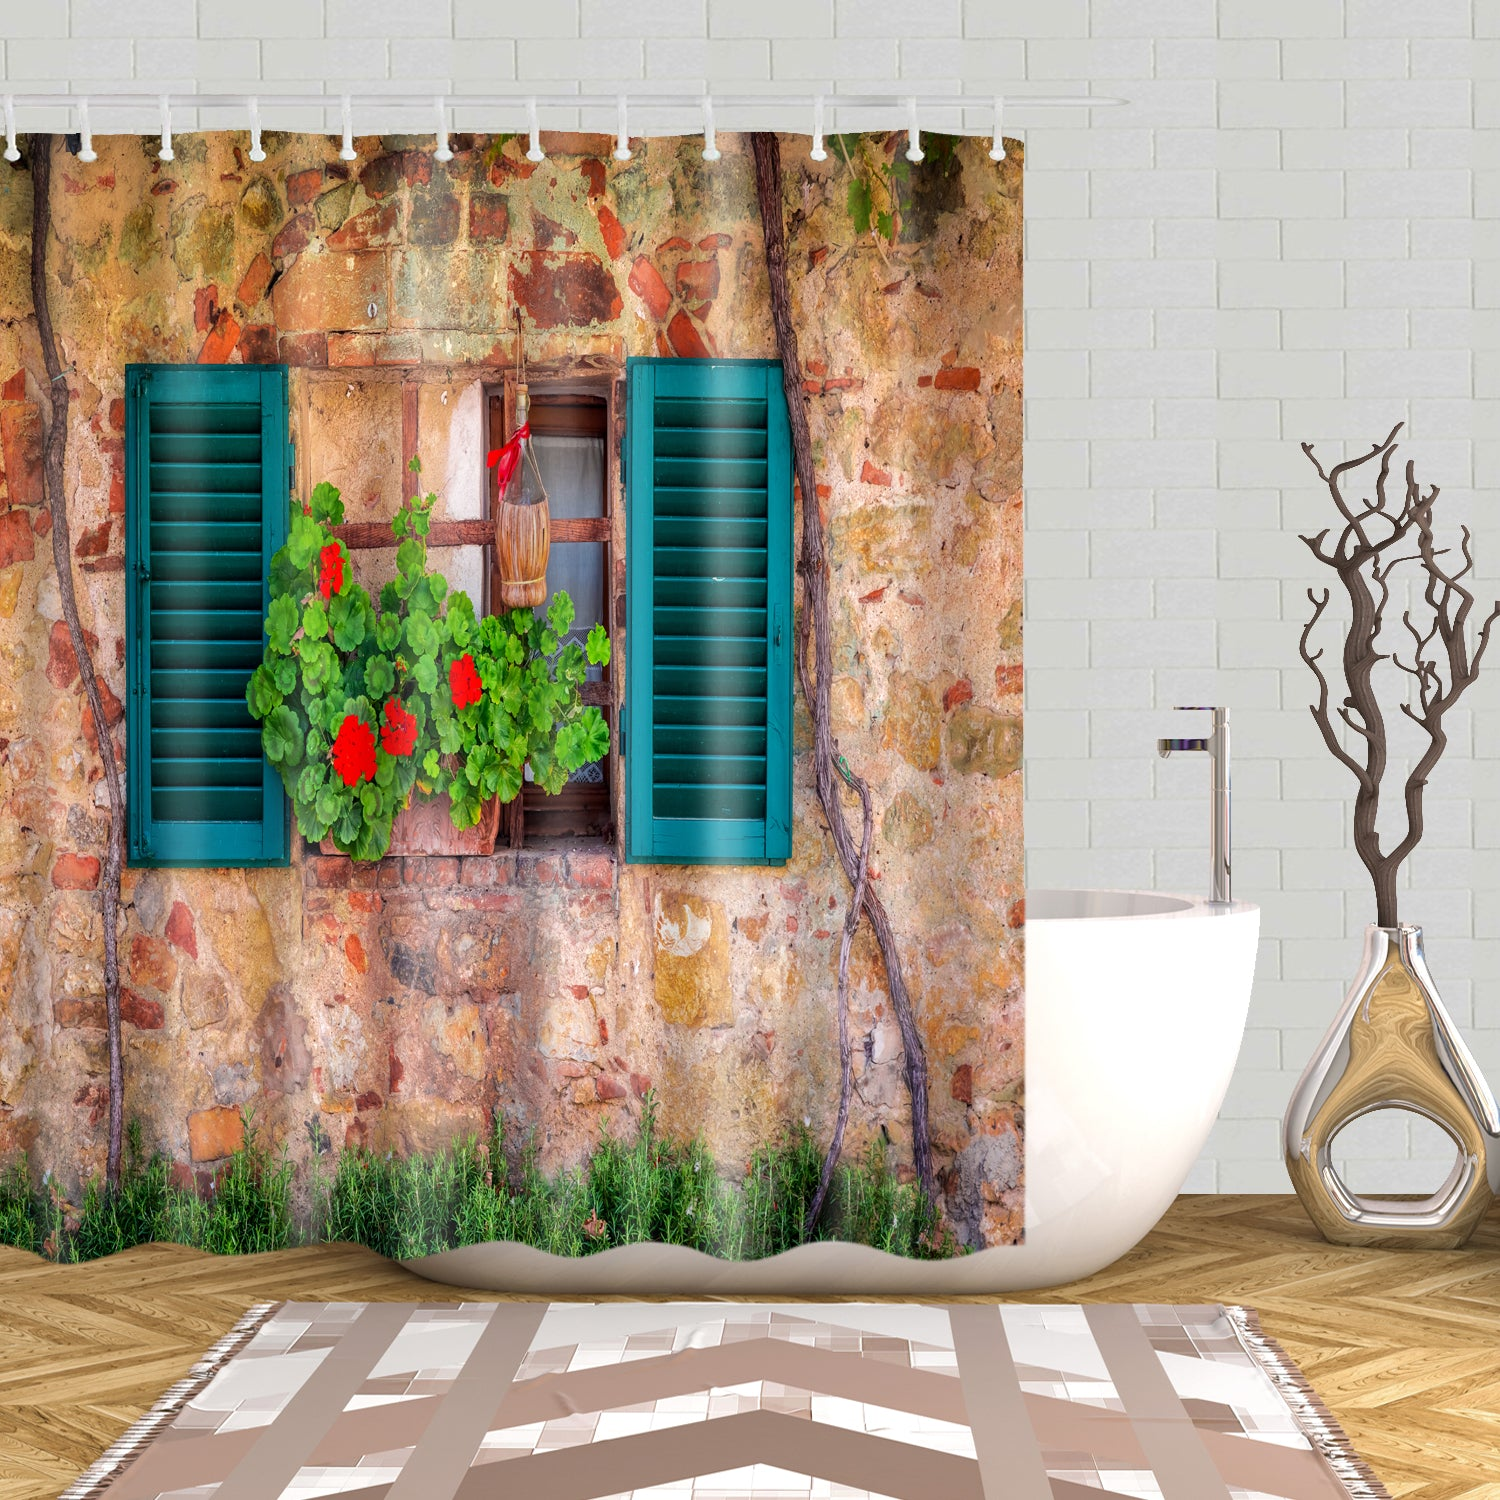 Spring Beautiful Window Decorated With Flowers Mural Shower Curtain